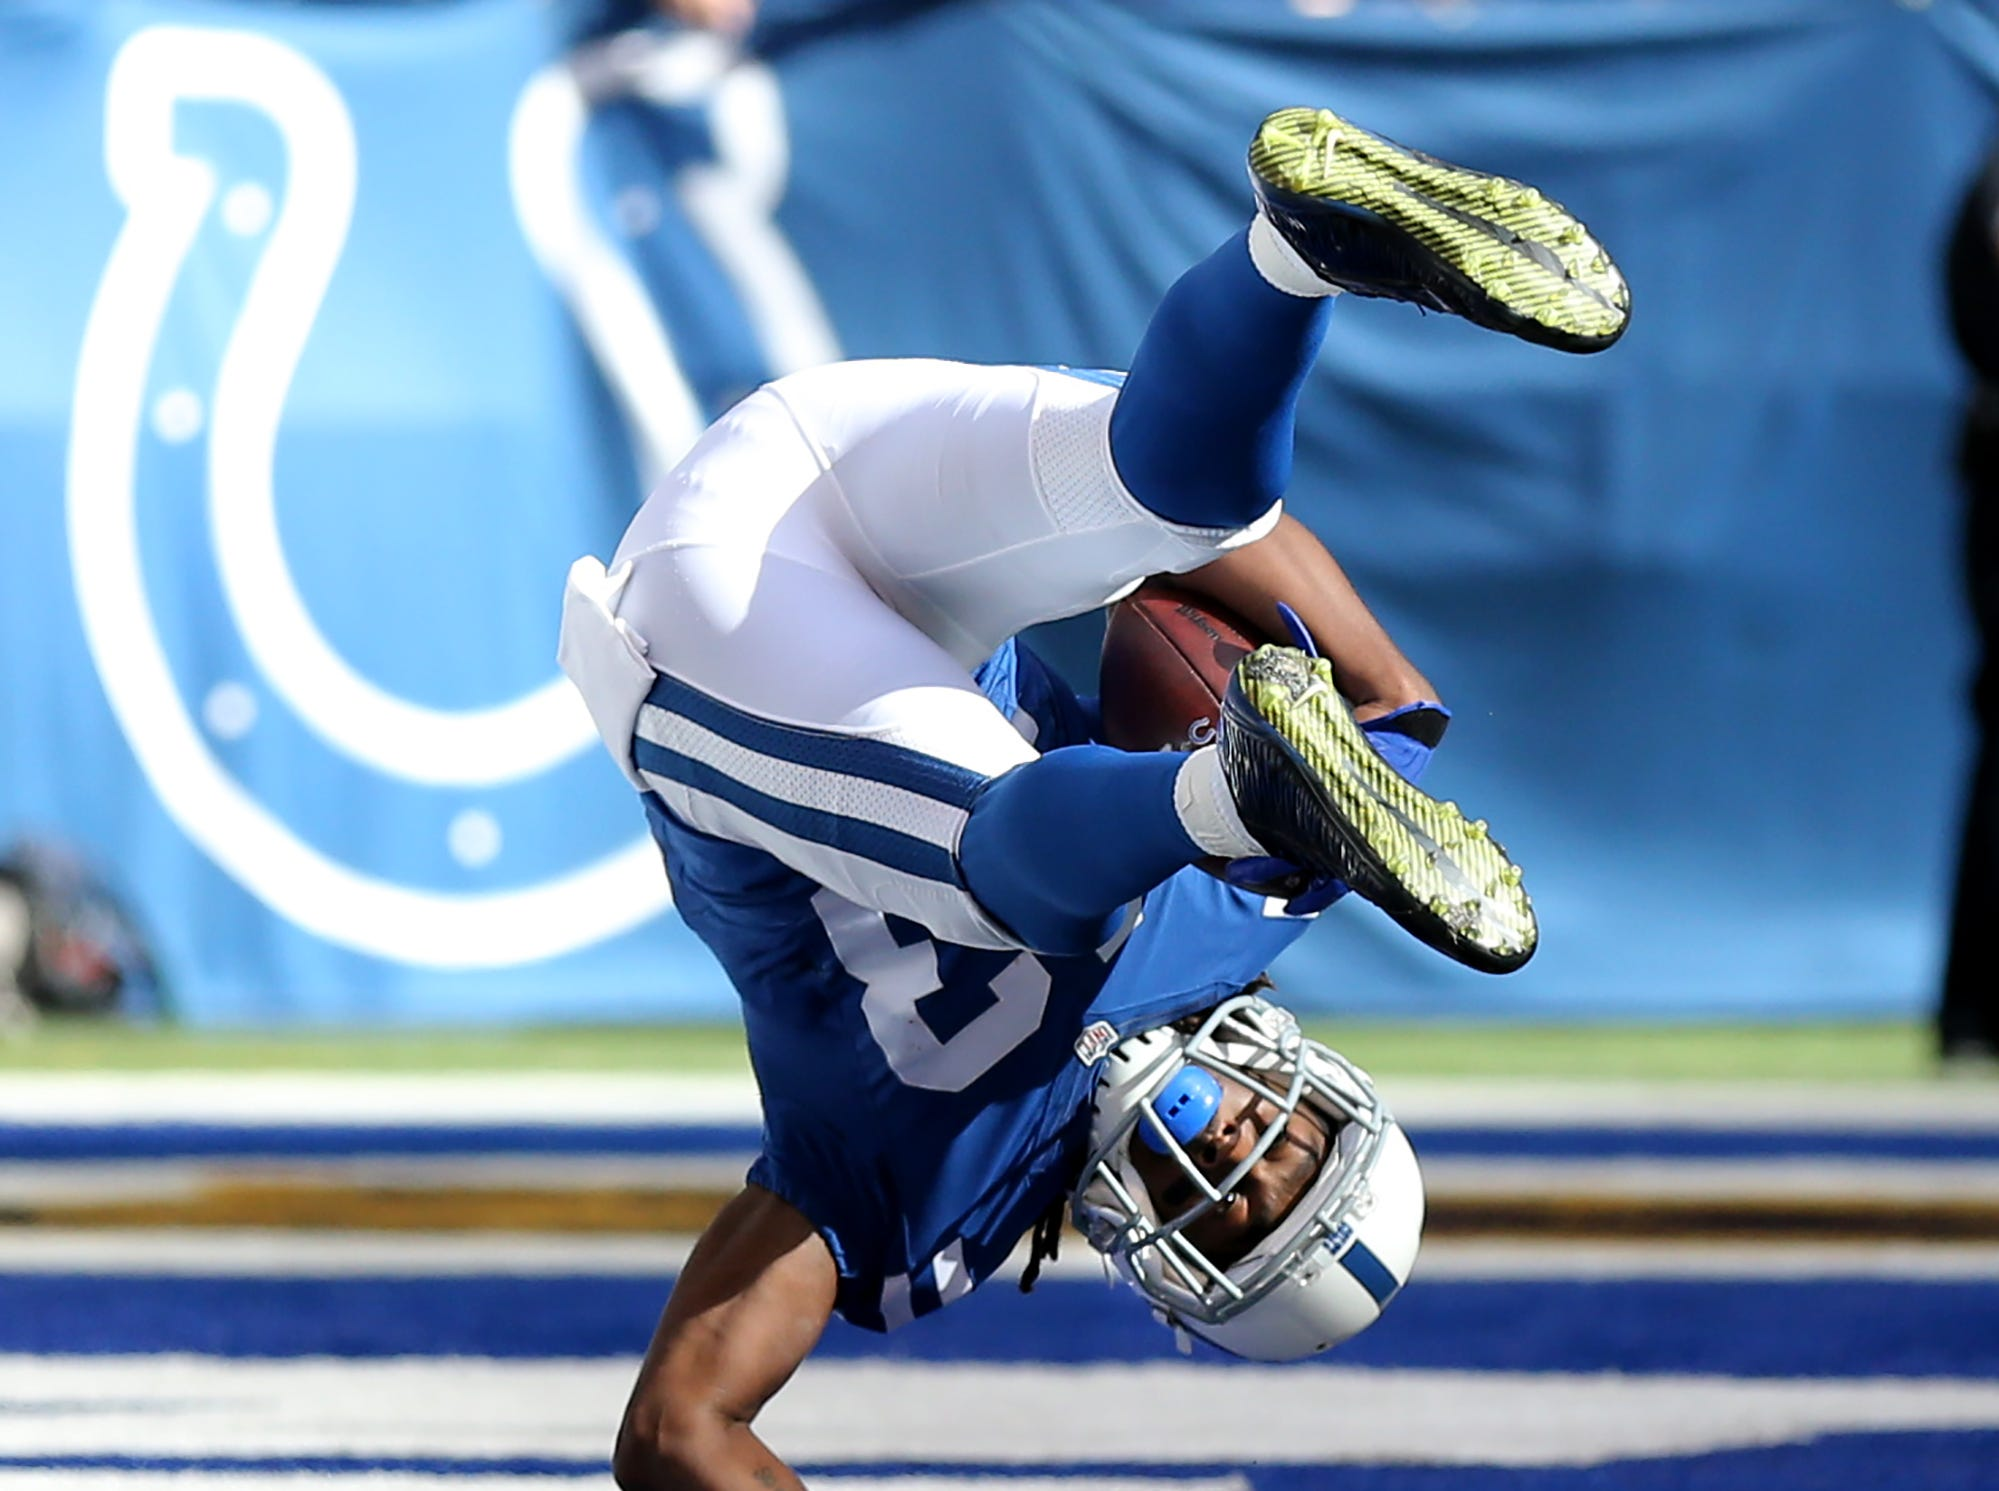 Indianapolis Colts wide receiver T.Y. Hilton (13) rolls into the end zone for show as he scores during the second half of an NFL football game Sunday, Oct. 25, 2015, at Lucas Oil Stadium.